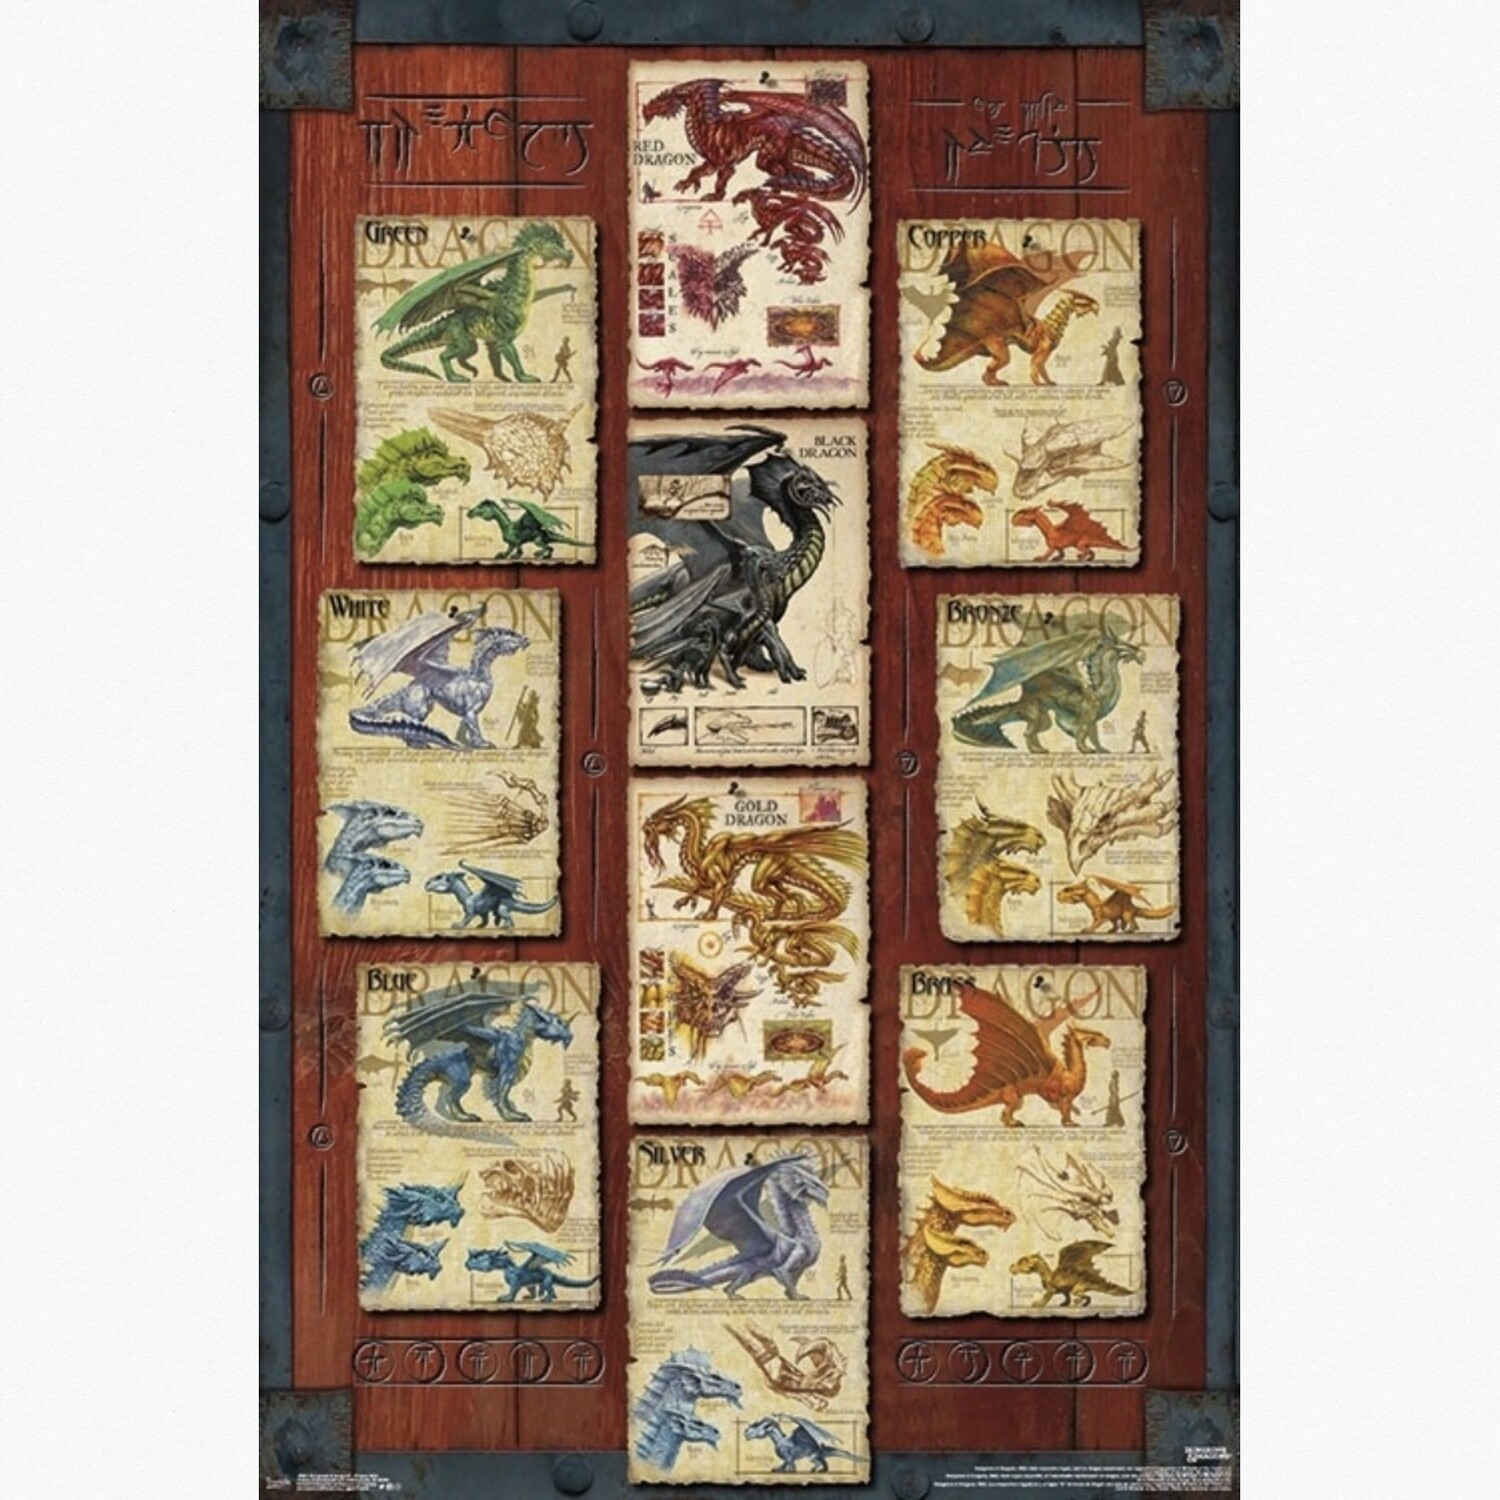 DUNGEONS & DRAGONS GRID POSTER